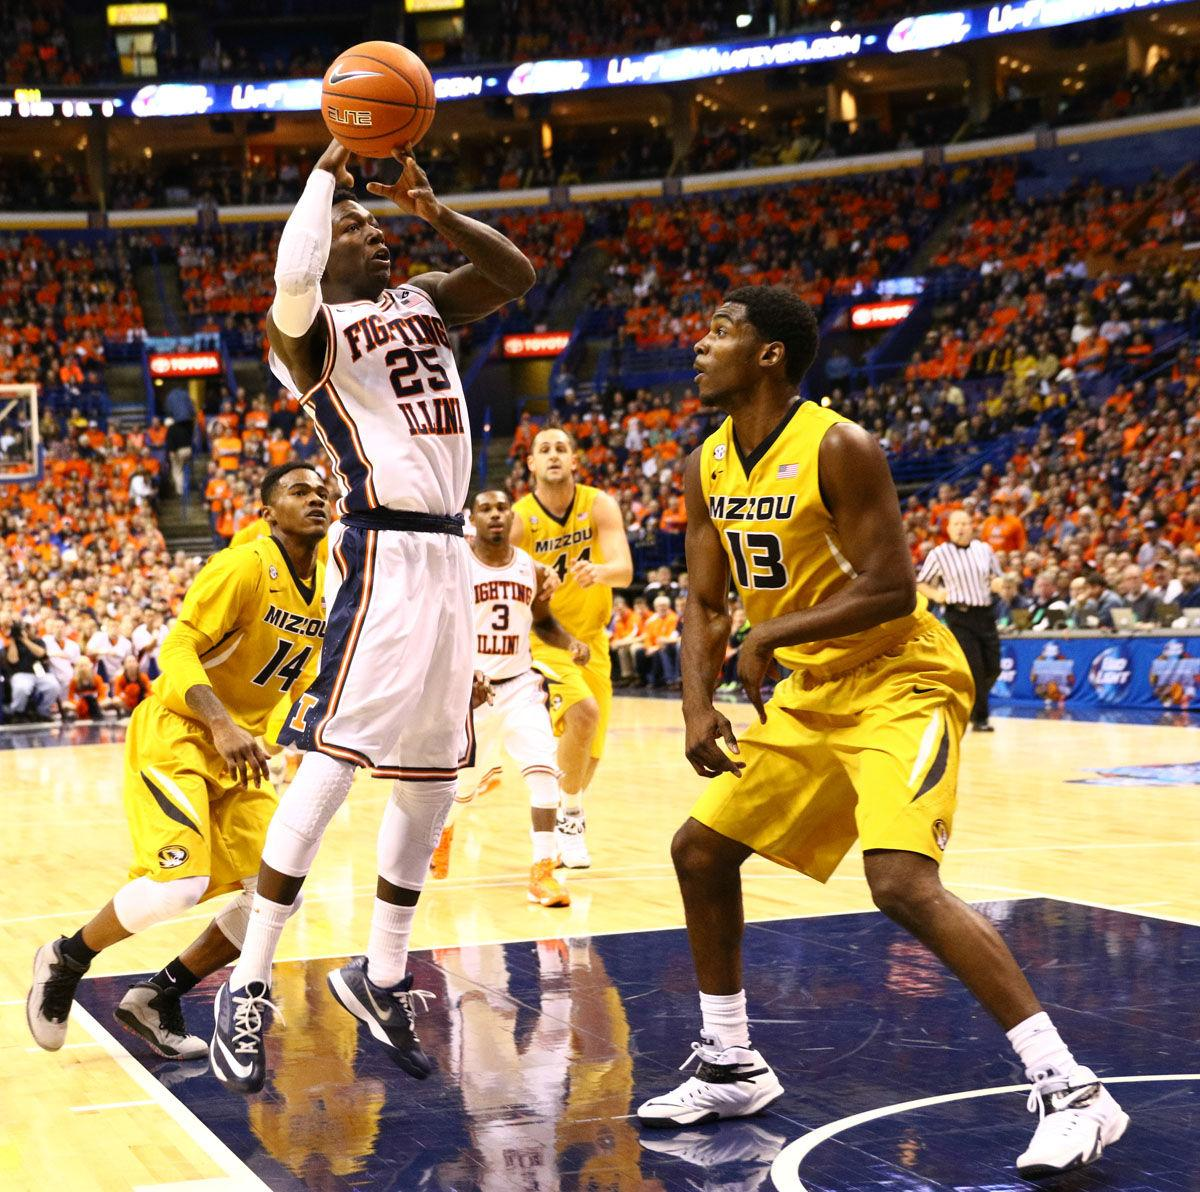 Illinois' Kendrick Nunn (25) loses control of ball after driving to the basket during the game against Missouri at Scottrade Center in St. Louis, Missouri on Dec. 20, 2014. The Illini won 62-59.